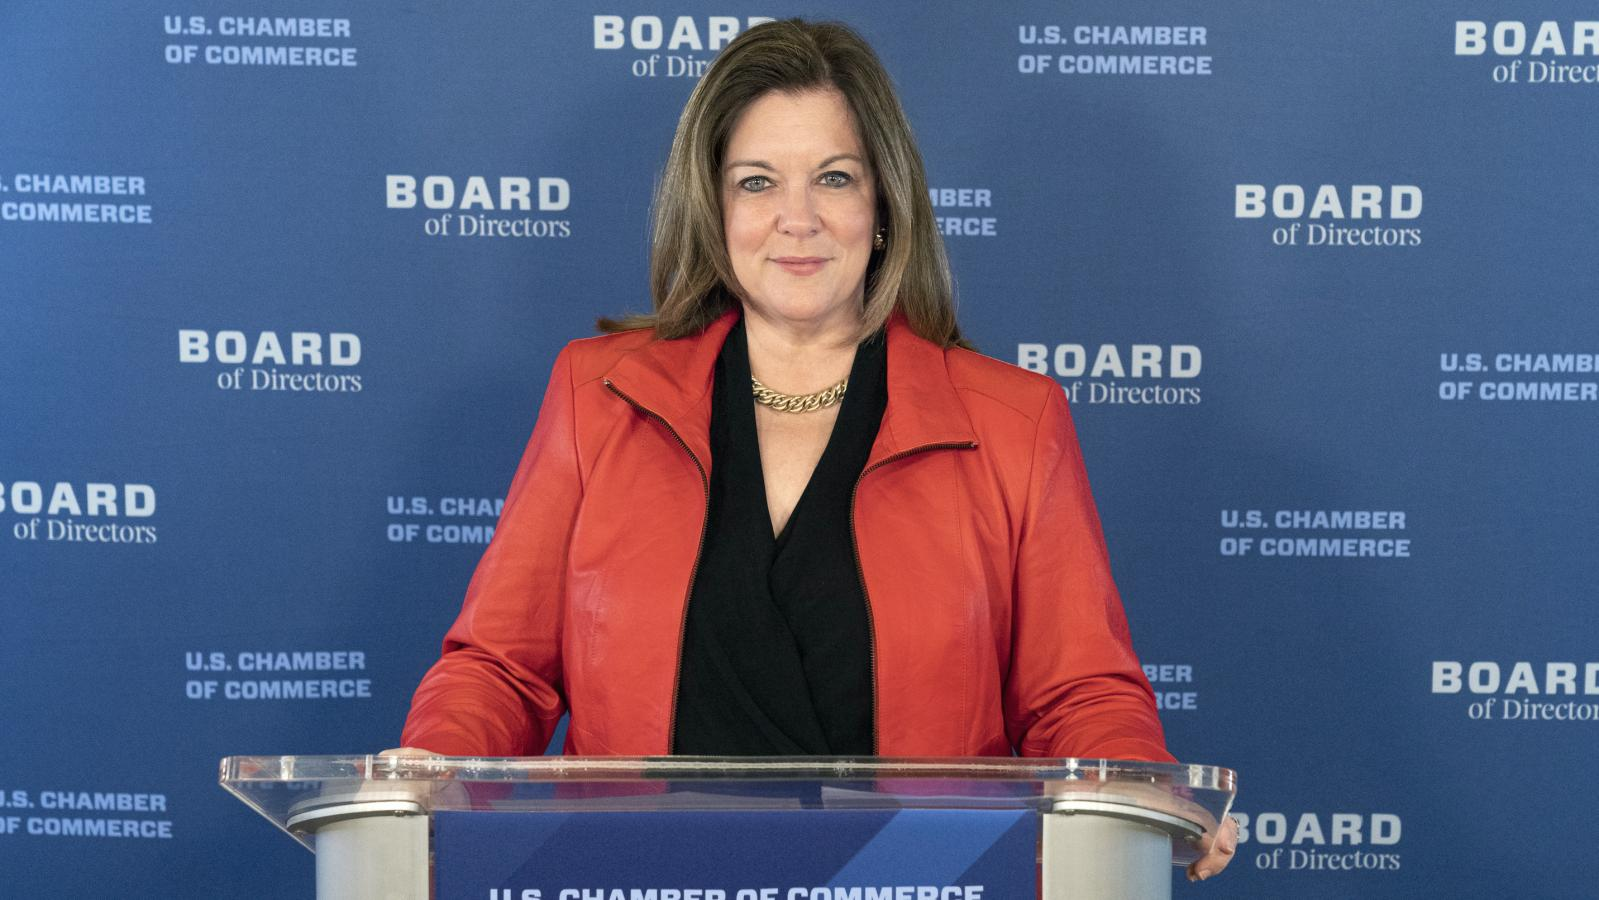 Suzanne Clark, U.S. Chamber President and CEO